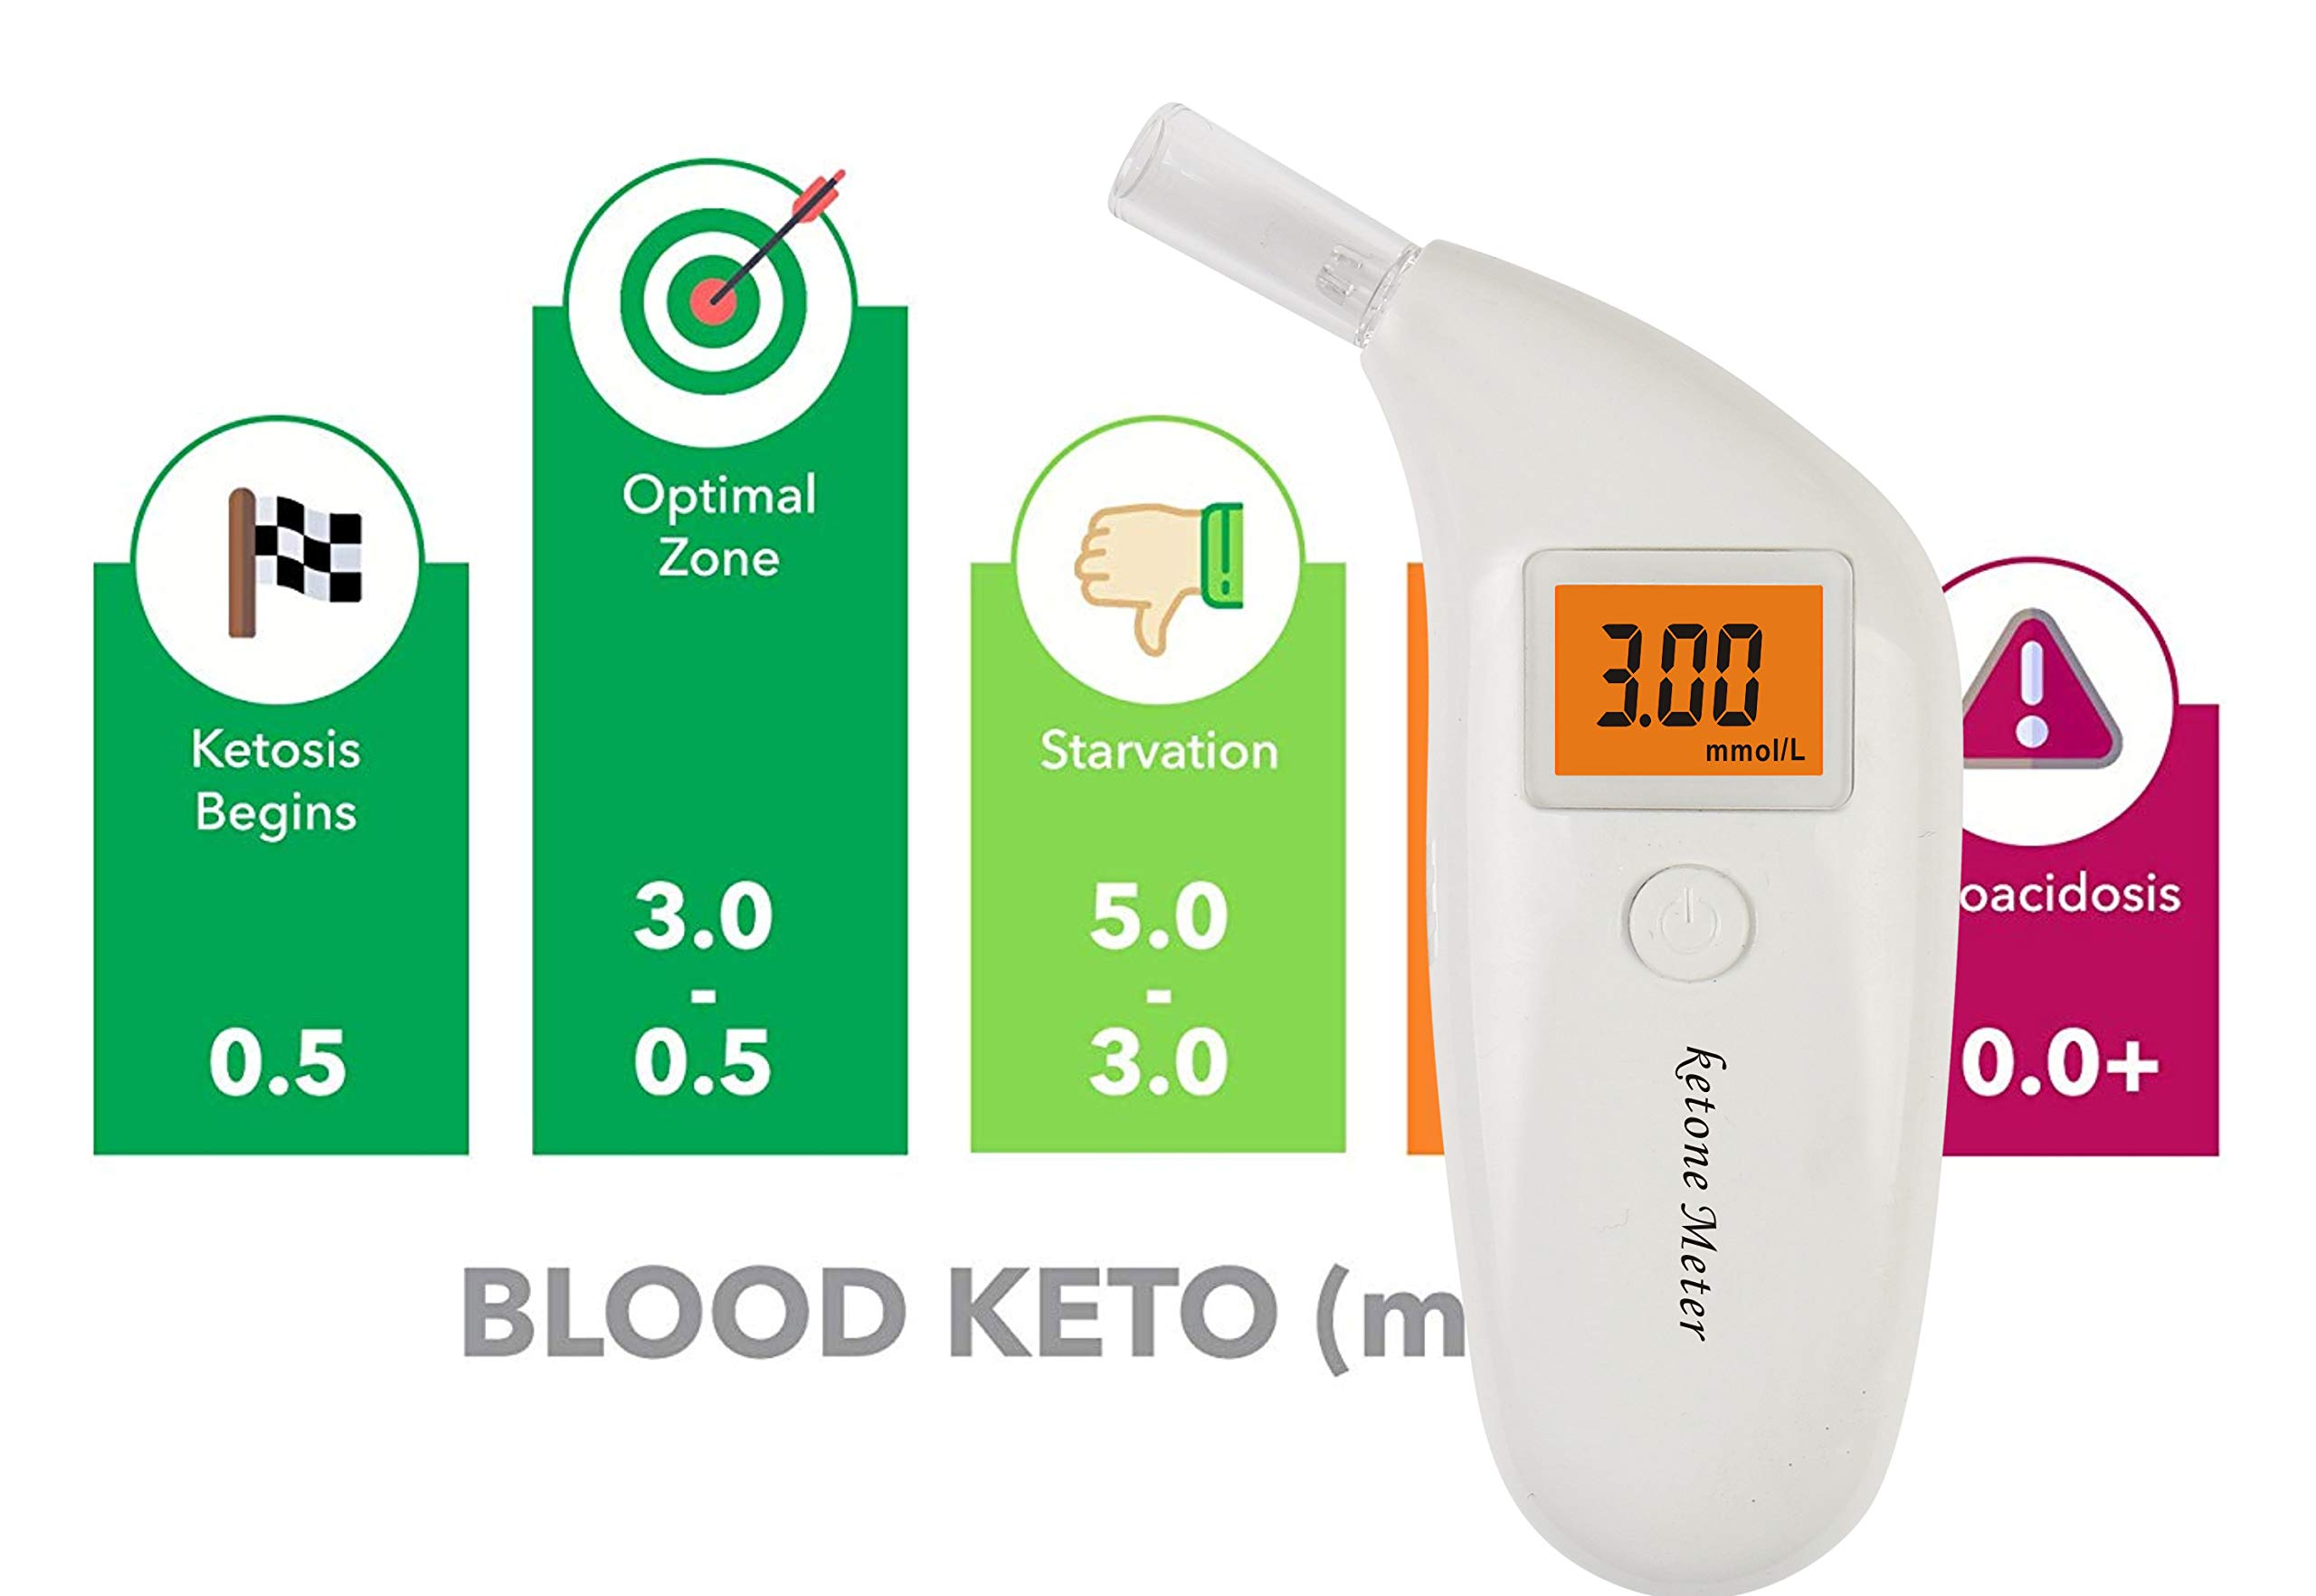 Keto Breath Analyzer with 5Pcs Replaceable Mouthpieces - Digital Ketone Meter - Ketosis Monitor for The Keto Diet - Accurate LCD Digital Display by VEXKETO